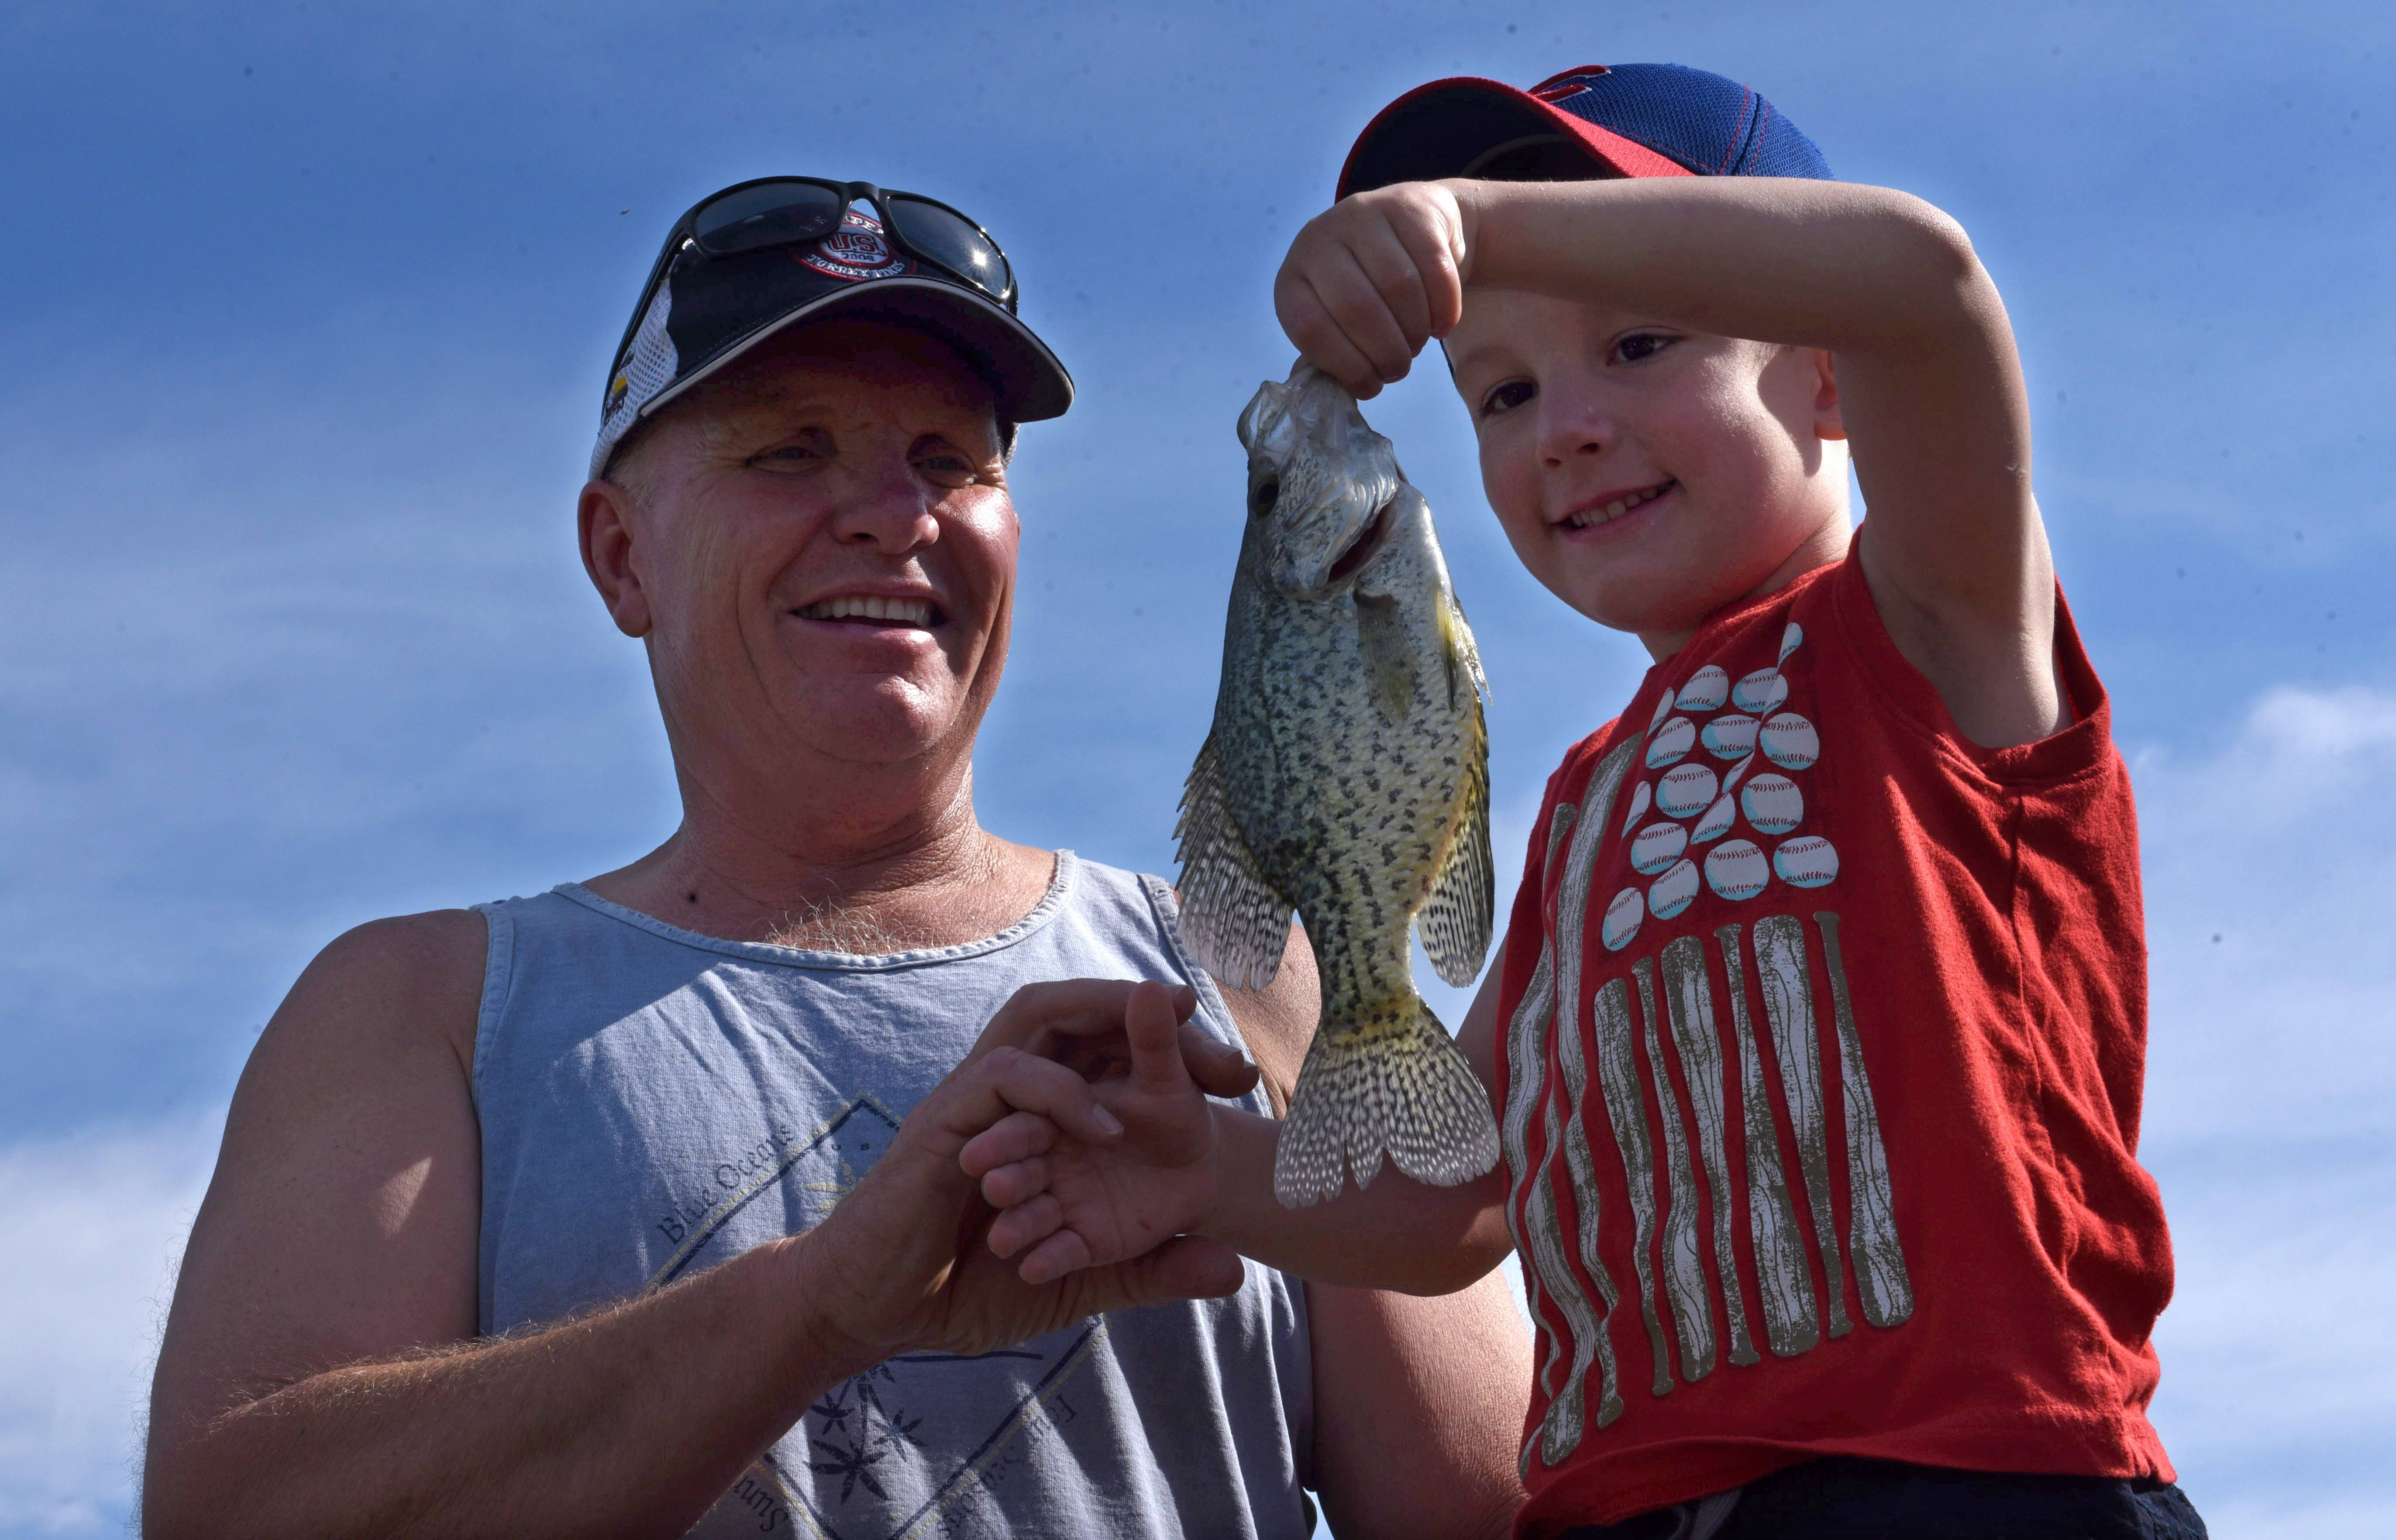 Vincent Galassi, 5, of South Elgin, holds up his recently-caught crappie alongside his grandfather, Mike Lifka of South Elgin, during the Tuna Kahuna fishing derby last year in South Elgin. Both South Elgin and Batavia are holding fishing derbies this weekend.